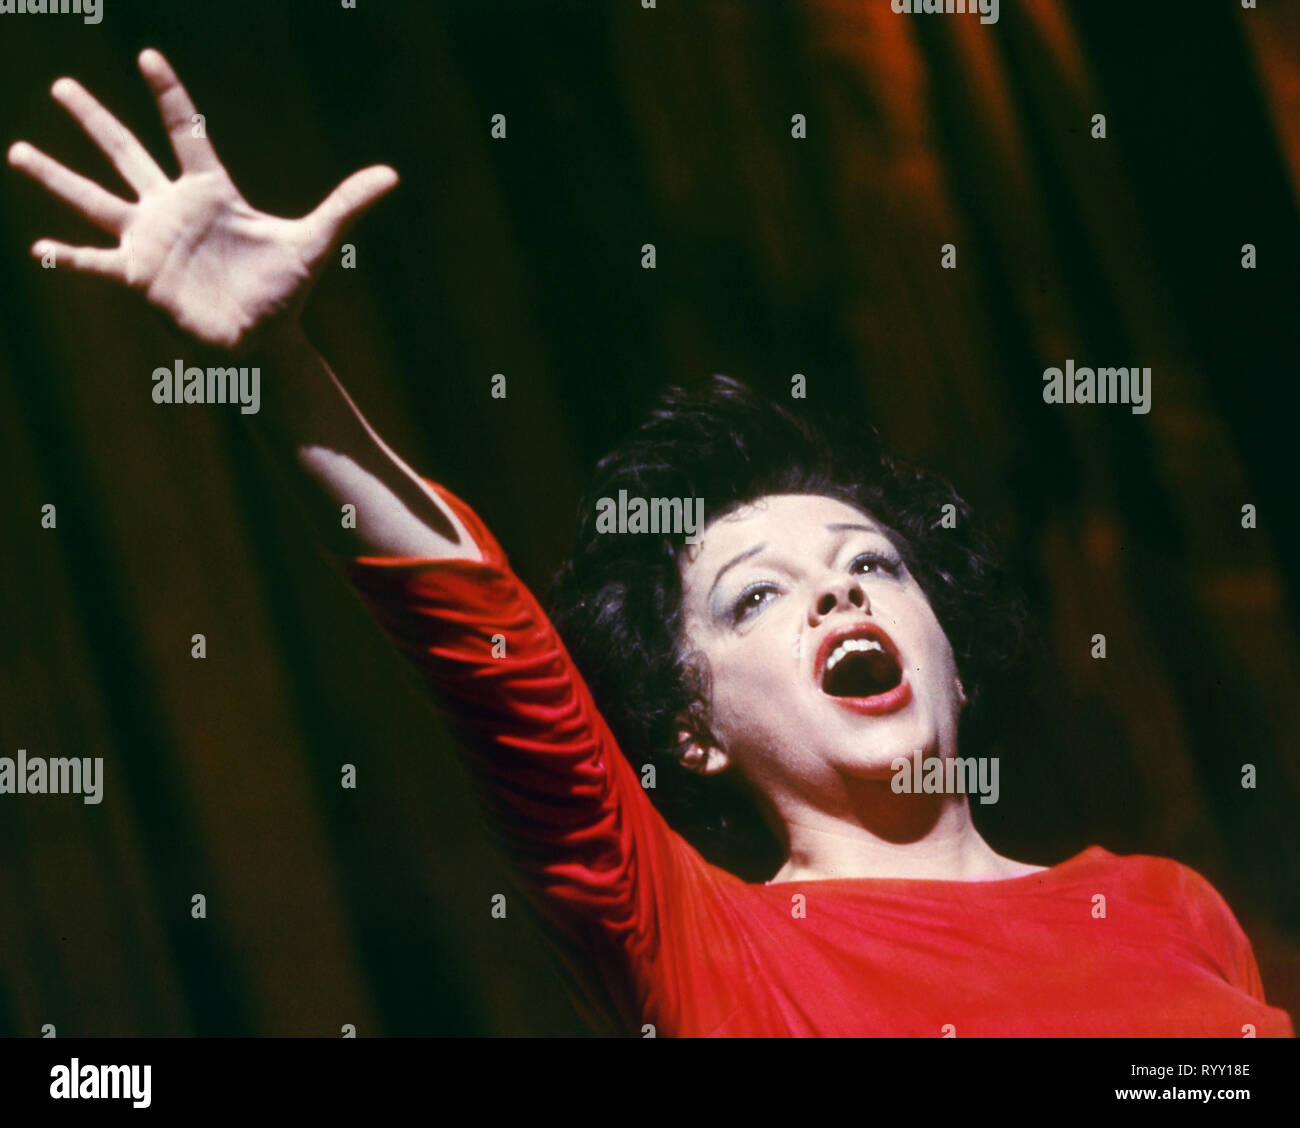 Judy Garland I Could Go On Singing 1963 United Artists File Reference 33751 849tha Stock Photo Alamy